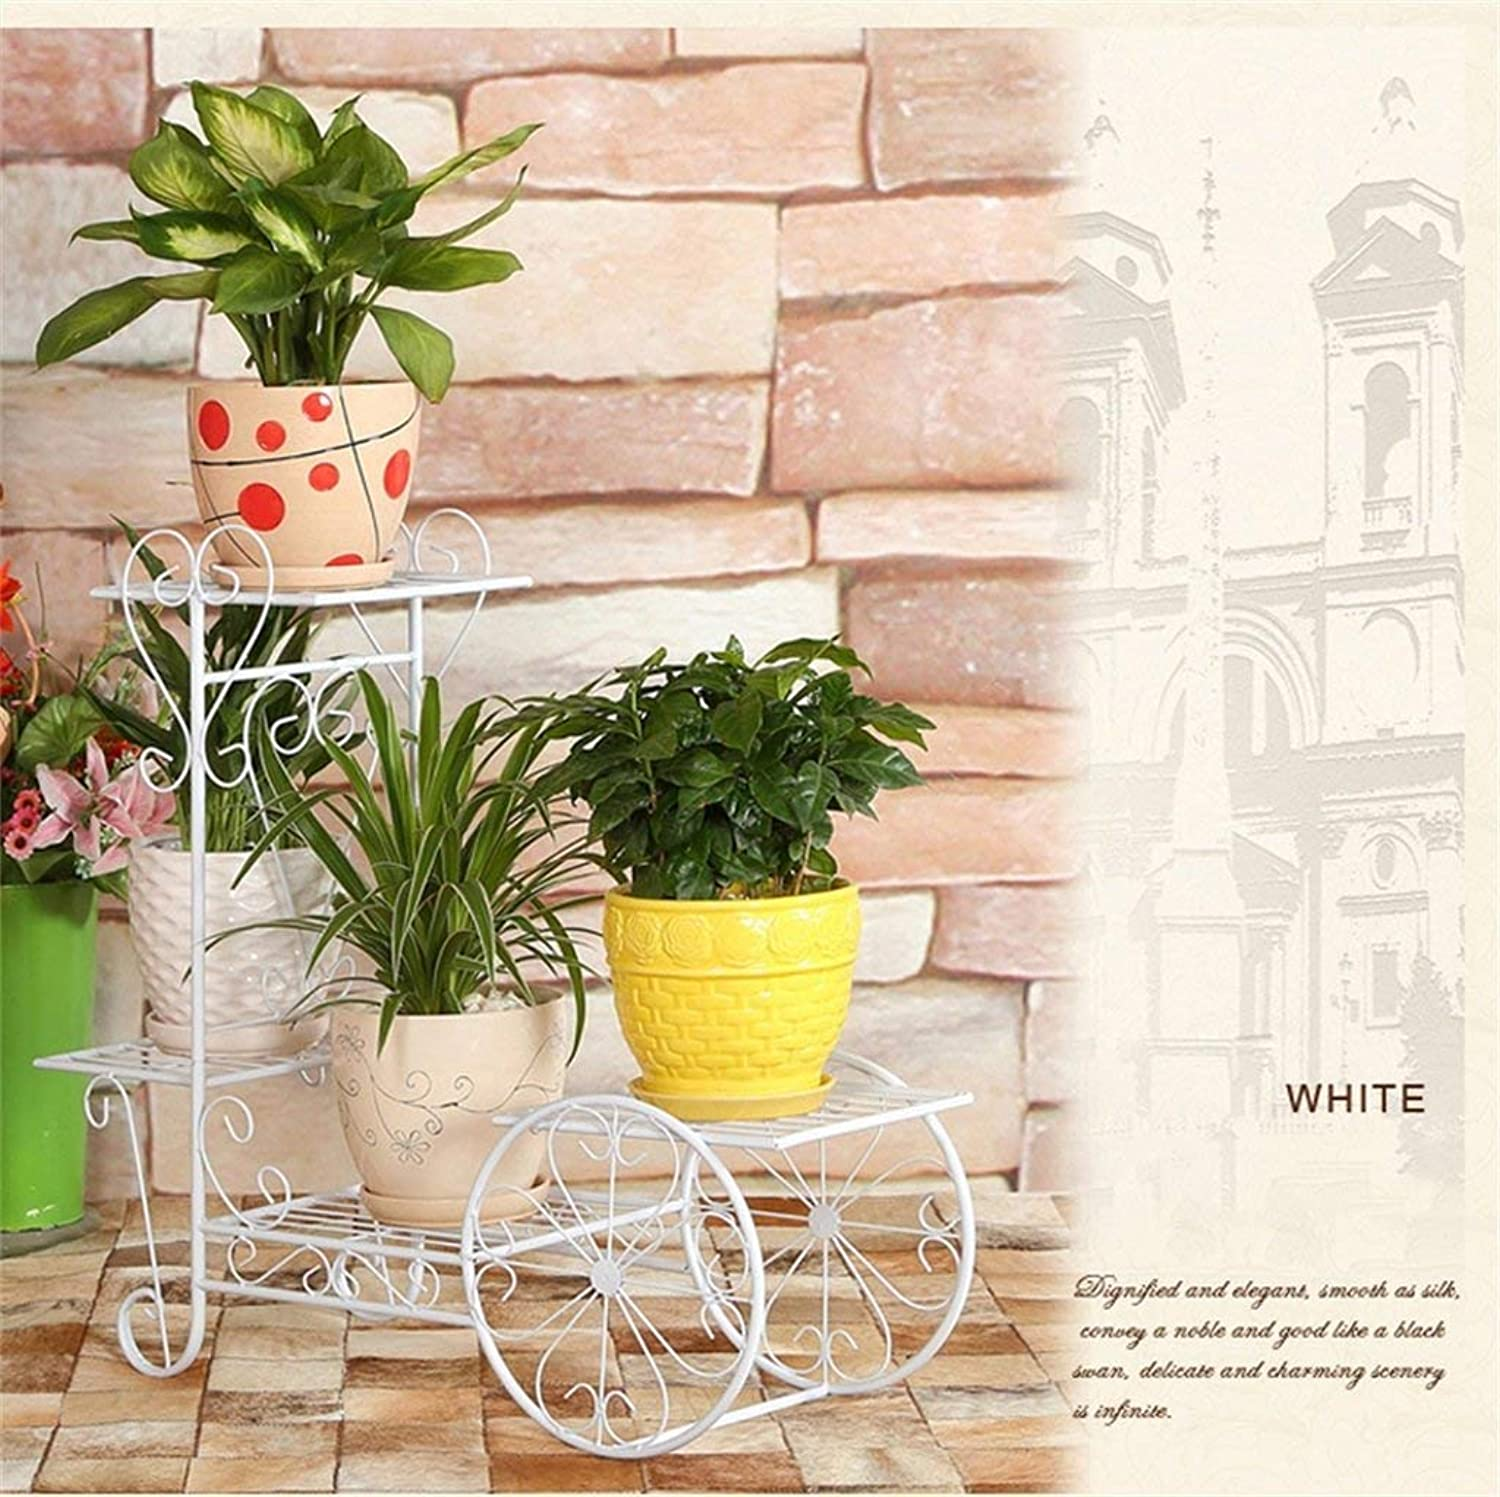 Chuangshengnet Outdoor Indoor Display Plant Stand Indoor Balcony Multi-Layer Floor Type Flowers Green Cranberry Plants (color   White, Size   Large)